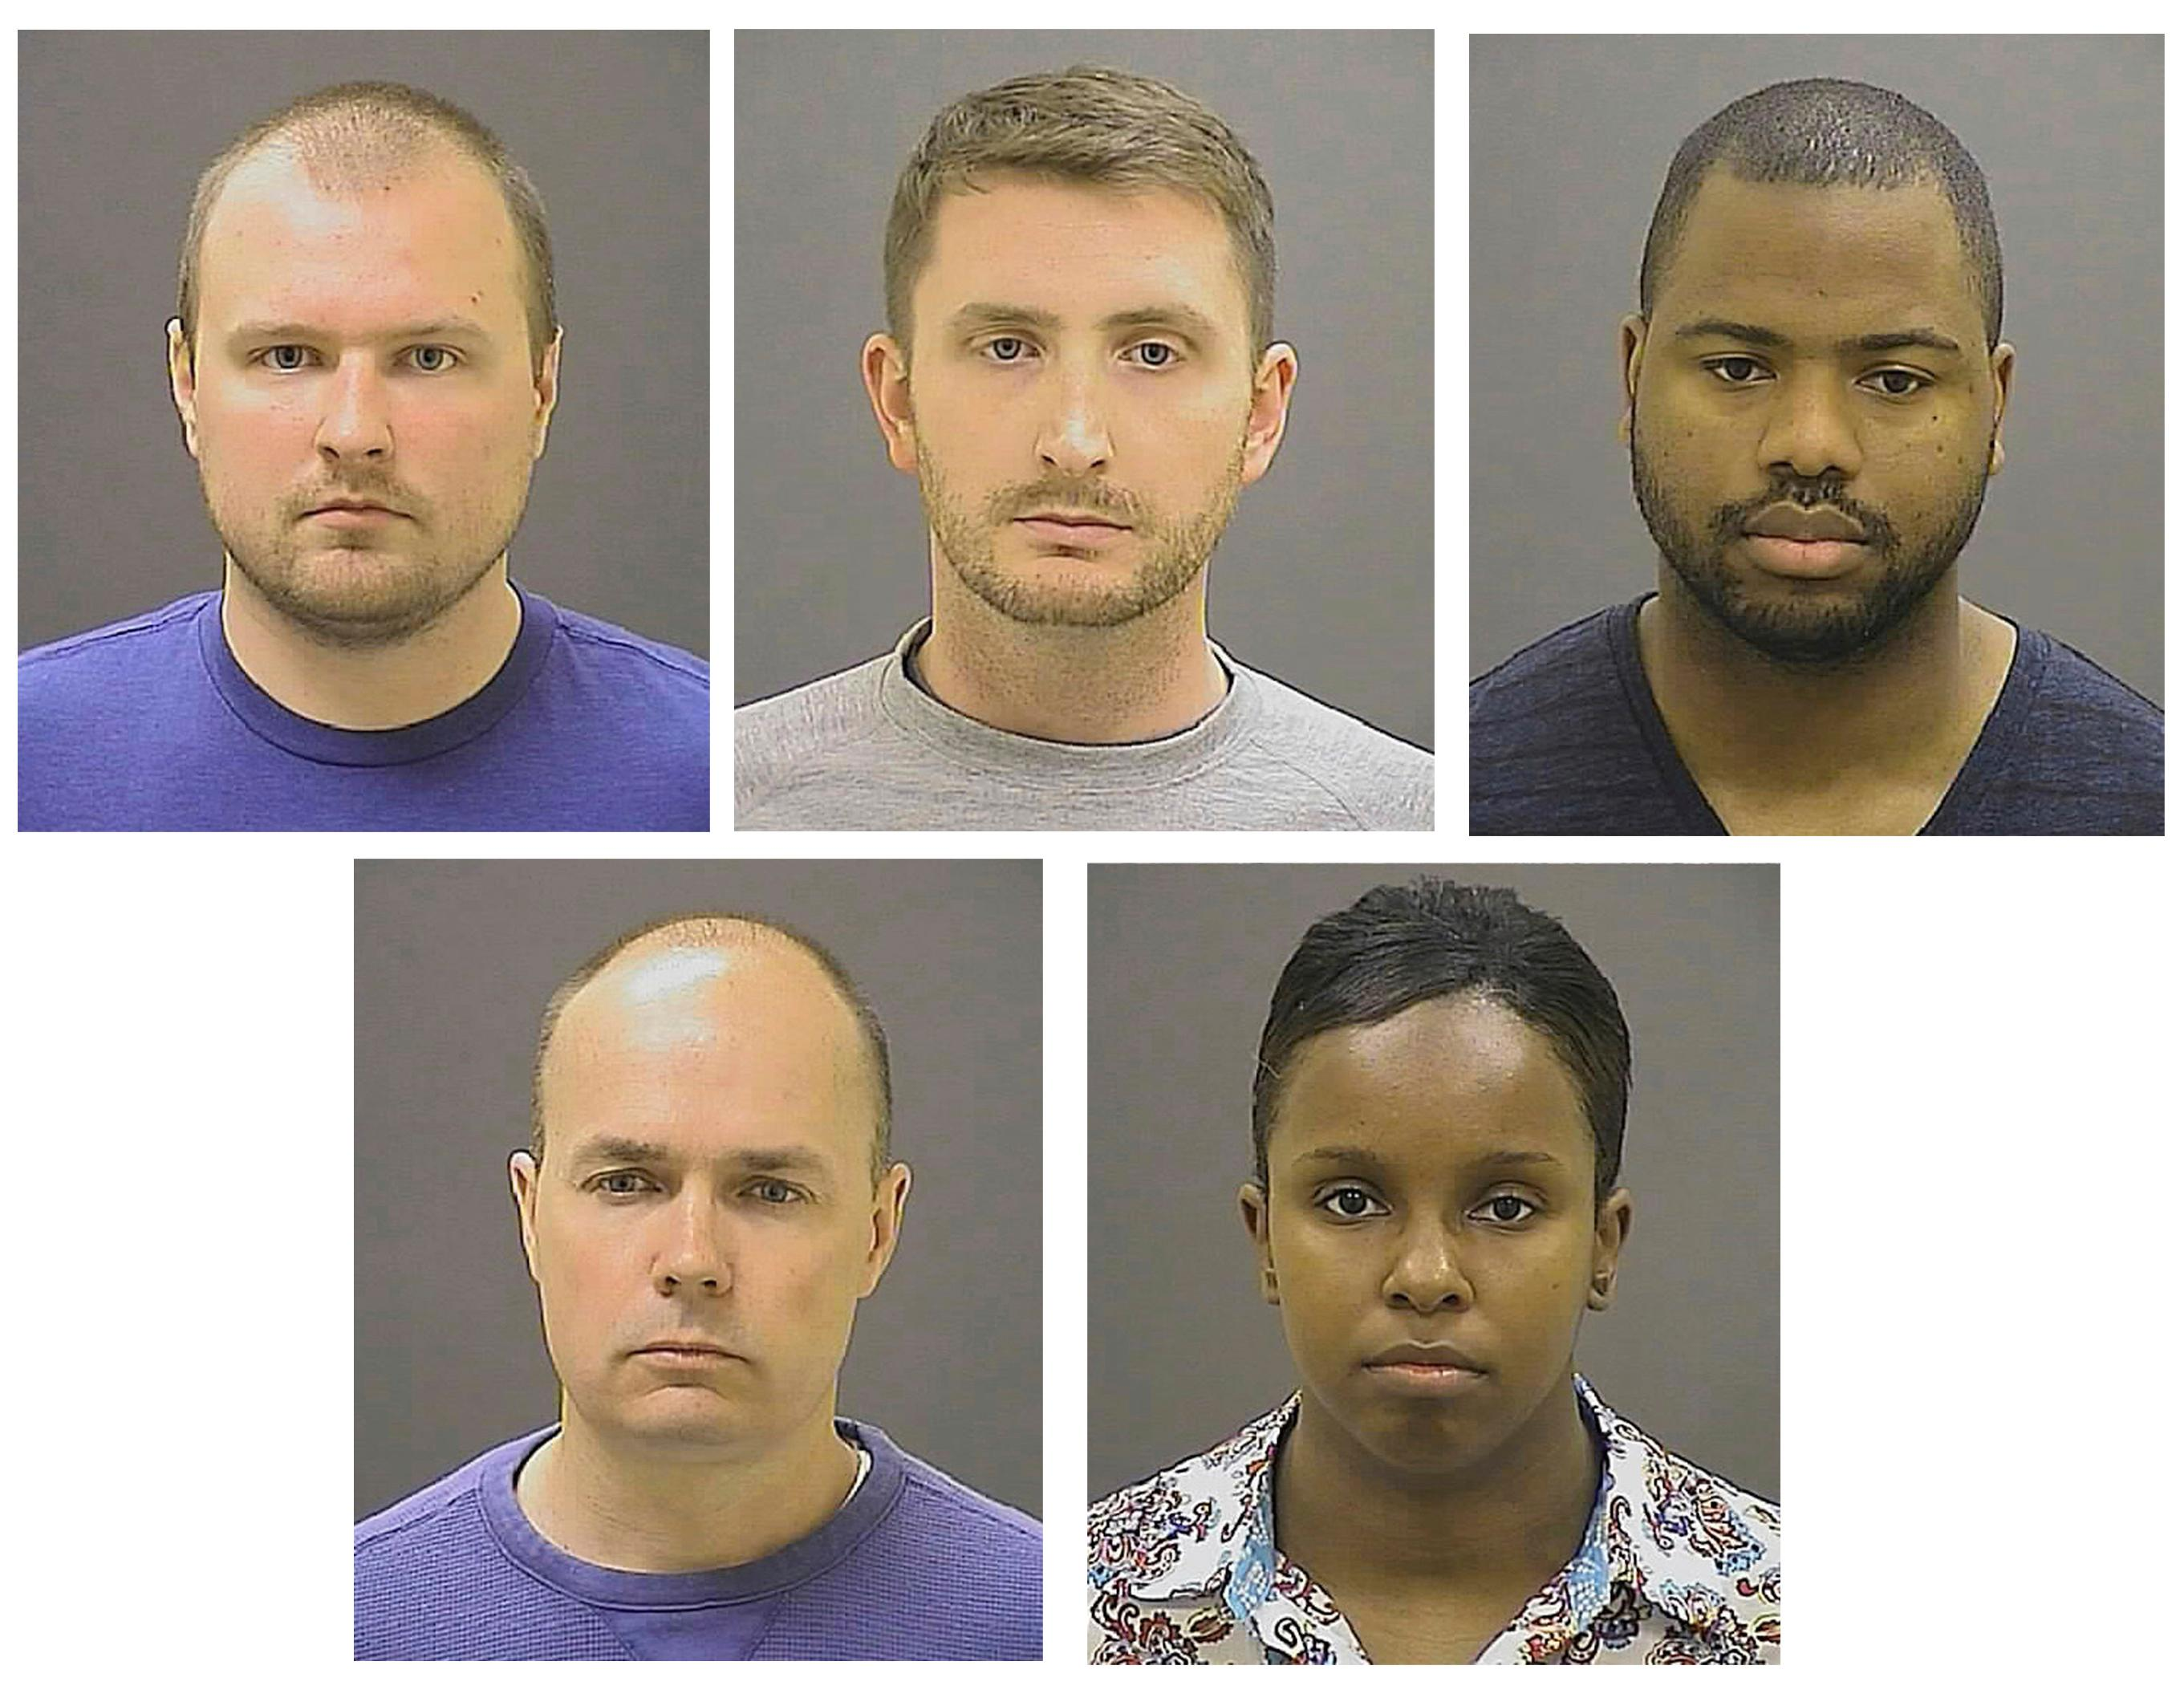 FILE - These May 1, 2015 file photos provided by the Baltimore Police Department show five Baltimore police officers charged in the death of Freddie Gray; top row from left, J.Garrett Miller, Edwin M. Nero, and William G, Porter, bottom row, from left,  Brian W. Rice, and Alicia D. White, who have filed a lawsuit against Baltimore State's Attorney Marilyn Mosby. The 4th U.S. Circuit Court of Appeals will hear arguments Wednesday, Dec. 6, 2017, in Baltimore State's Attorney Marilyn Mosby's bid to overturn a decision from a judge who ruled that parts of the lawsuit can move forward. (AP Photos/Baltimore Police Department)